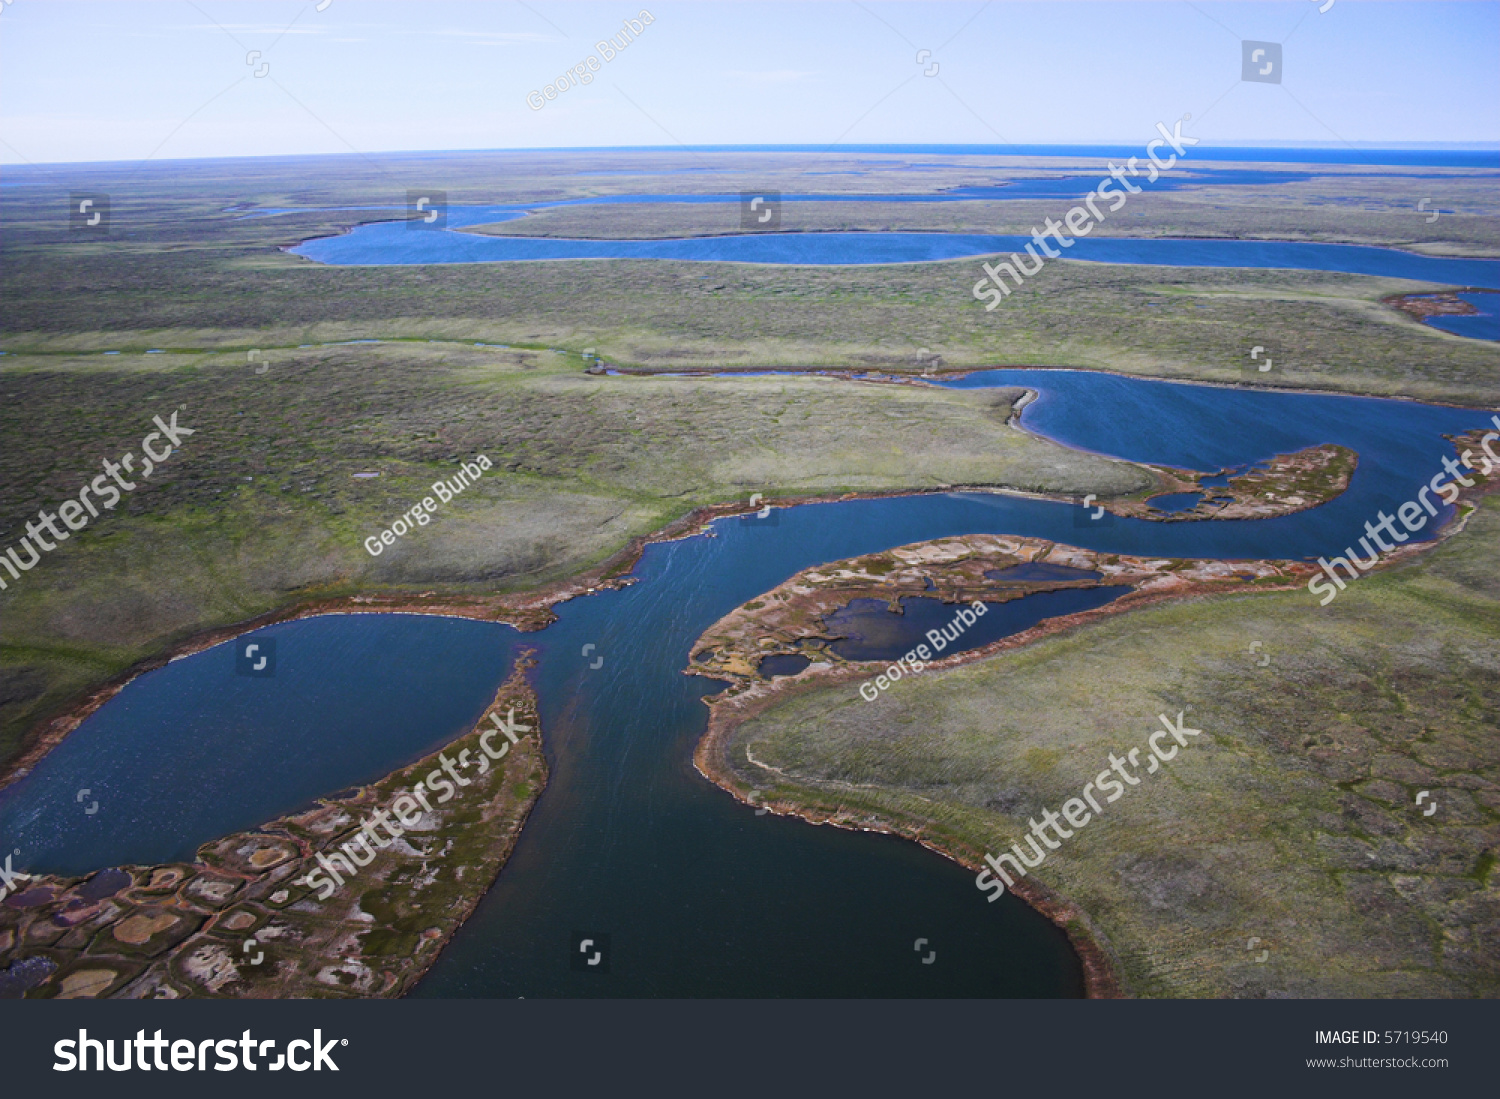 Aerial Photos Of Arctic Tundra Wetlands For Backgrounds And Textures